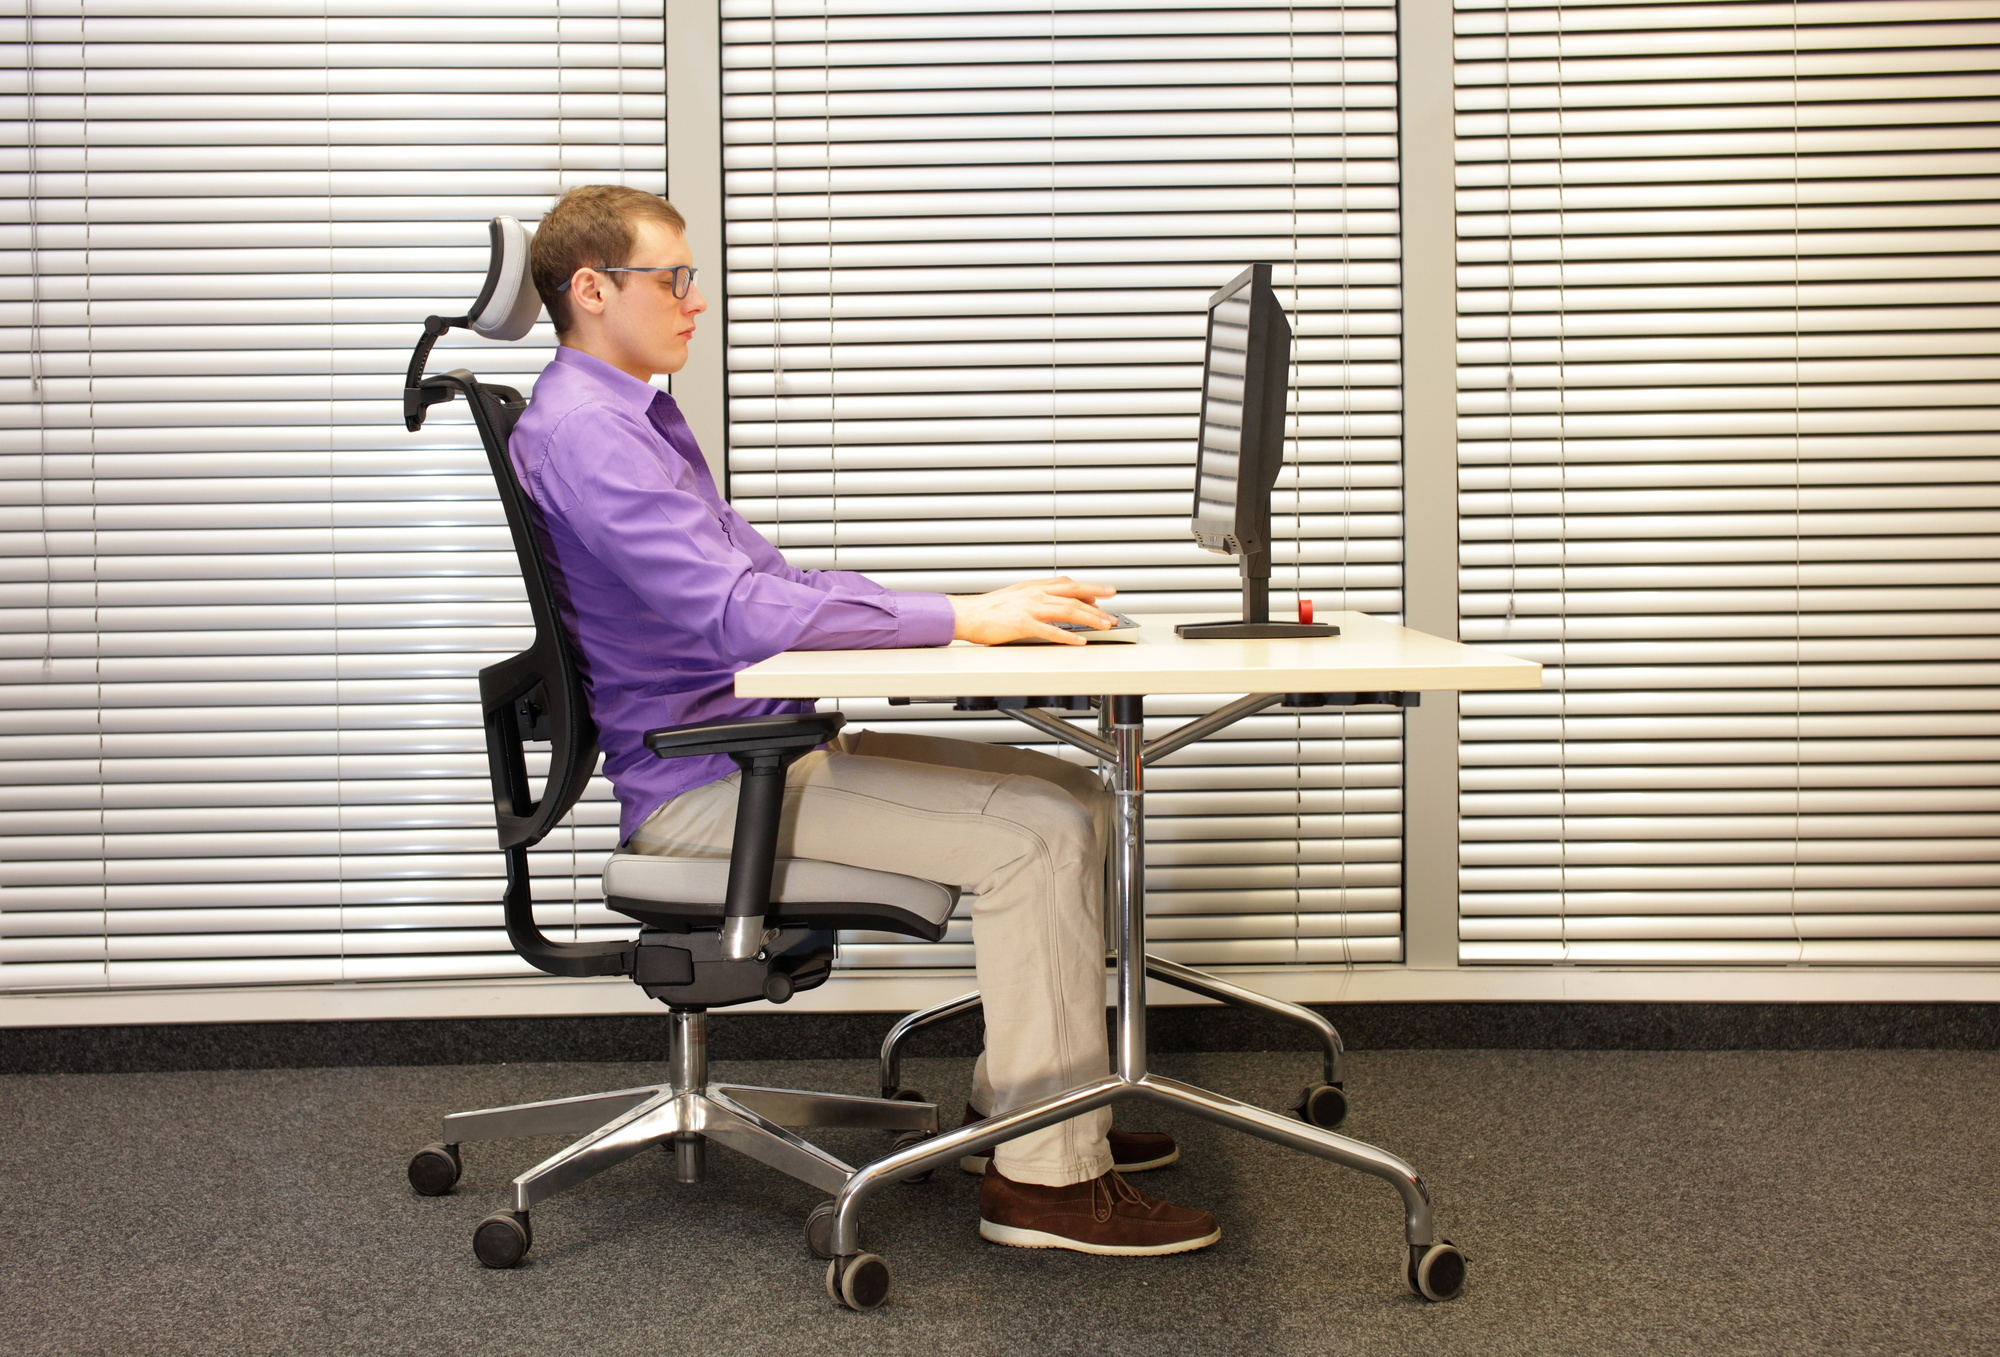 correct sitting position at workstation. man on chair working with pc